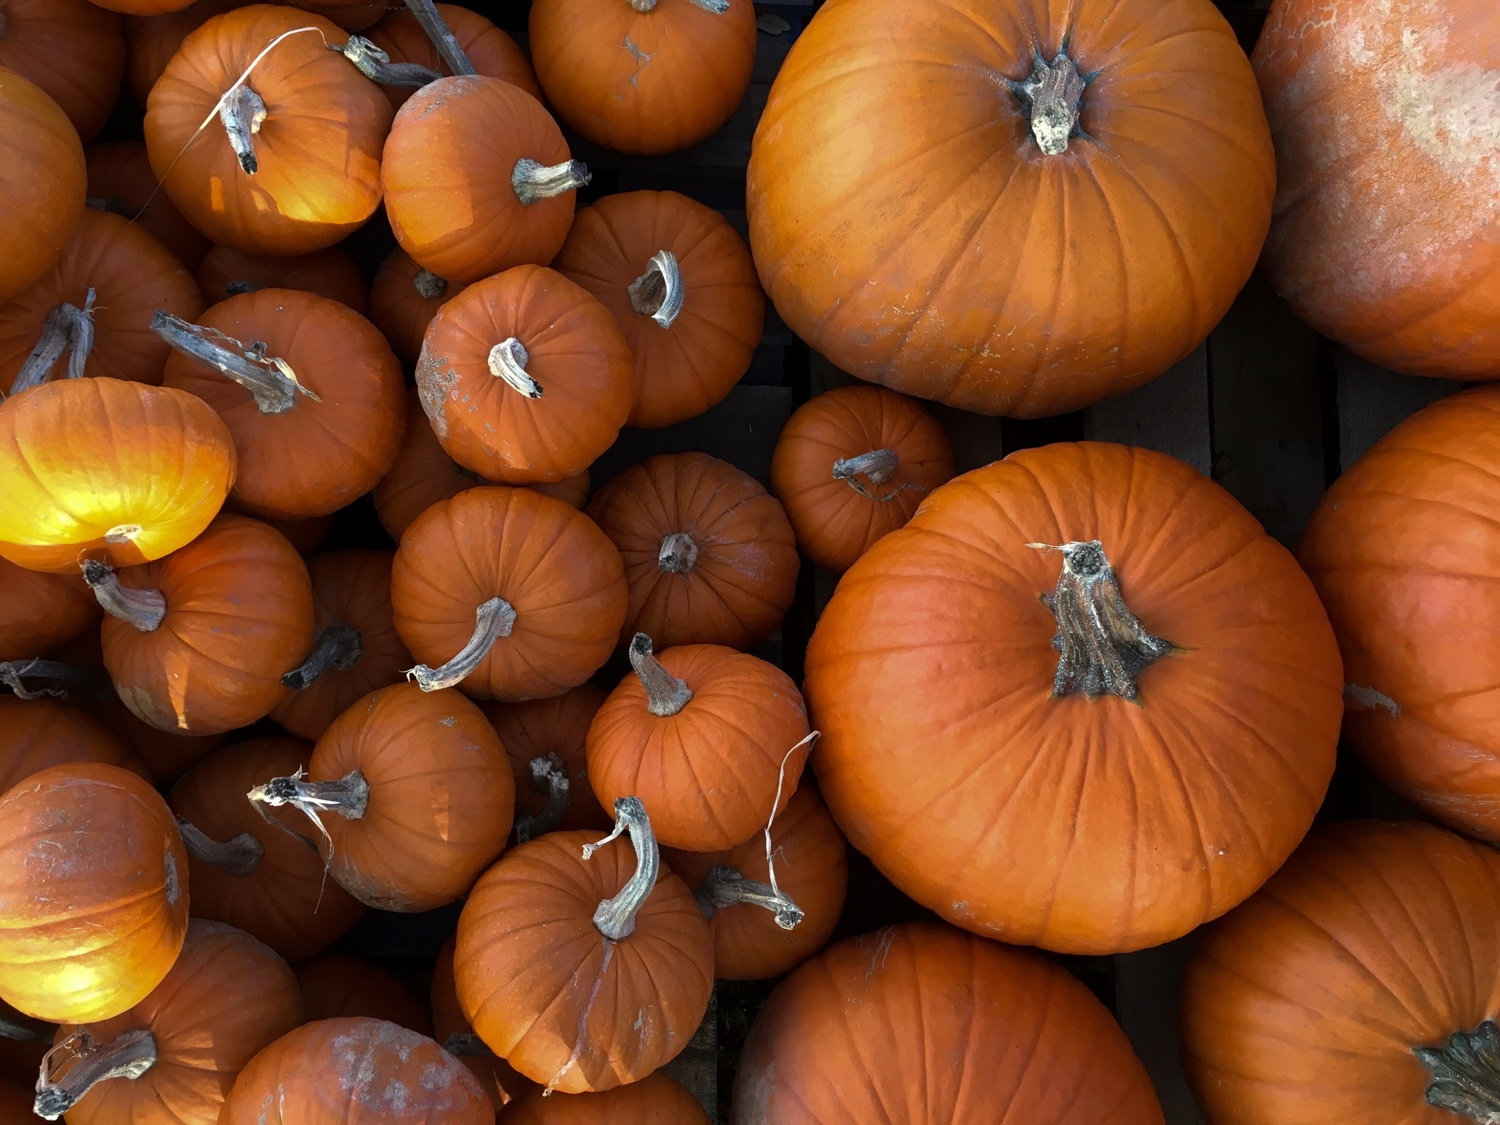 Fall vegetables and what to do with them: Delicious and easy vegan meal ideas for cooking with pumpkin, kale, collard greens, parsnips, sweet potatoes and mushrooms